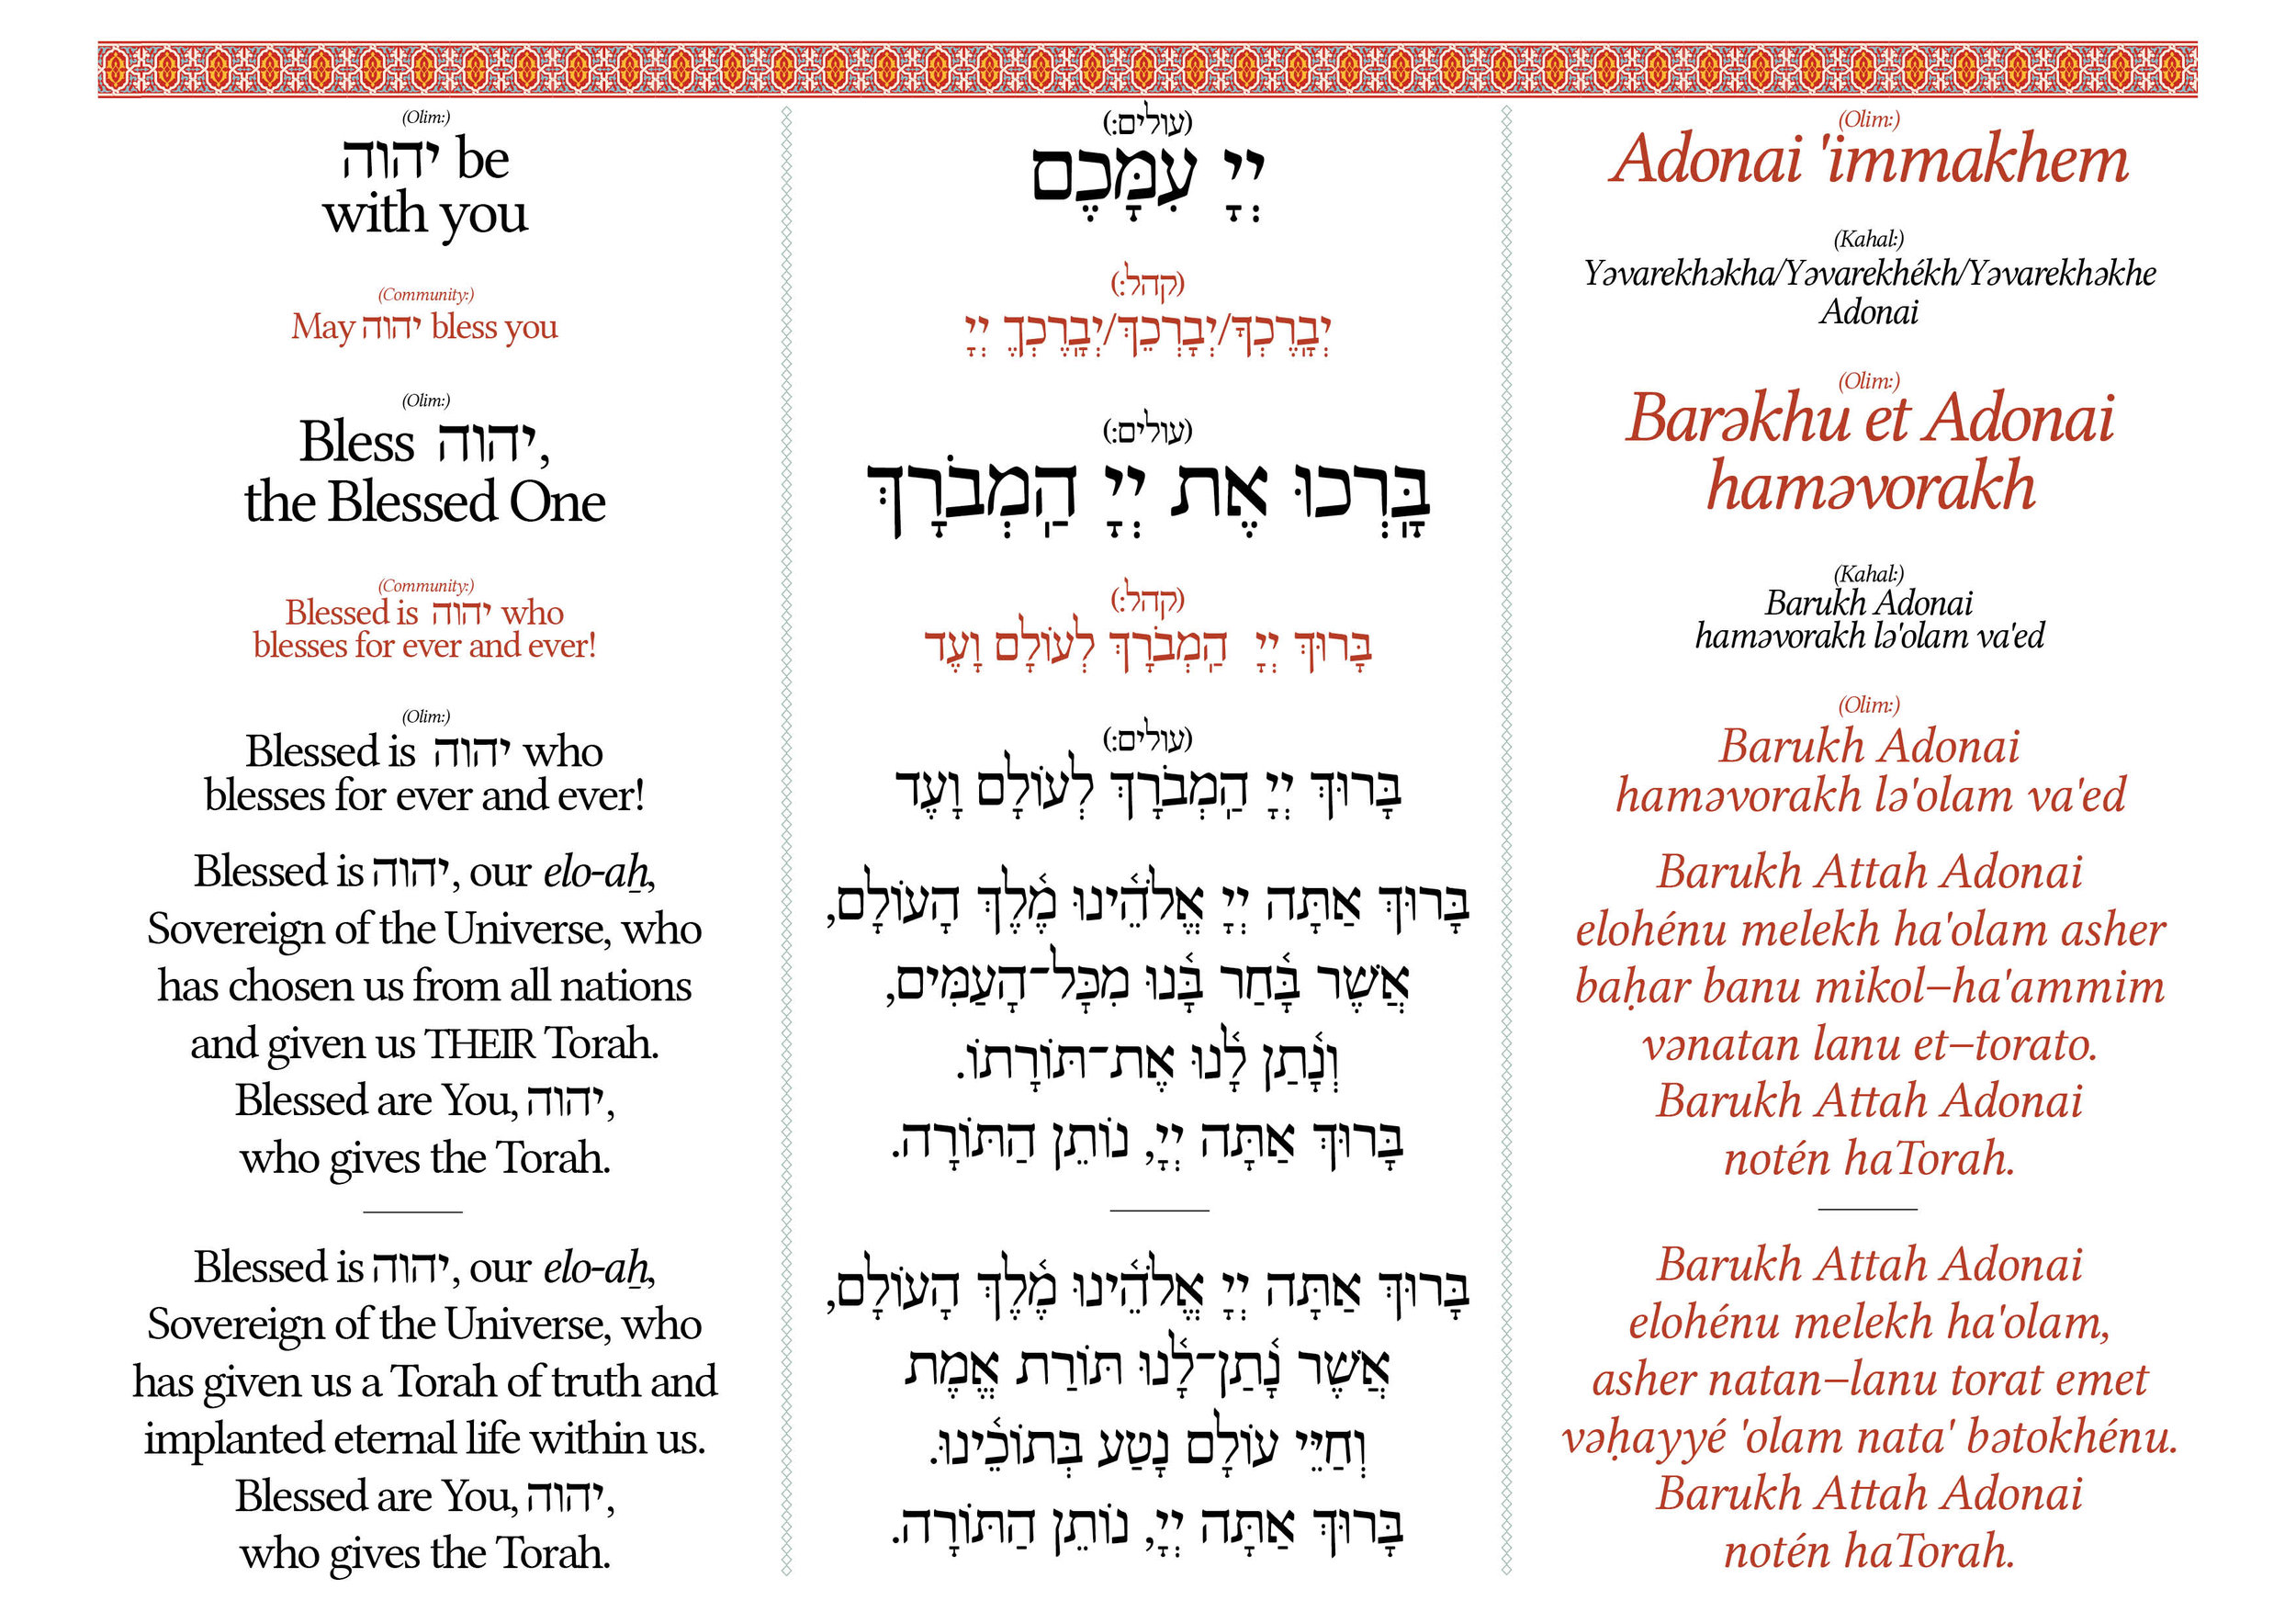 This page actually probably won't be in the siddur at all (at least not in this format) but will be among the materials available to be downloaded on our future website. The idea of Siddur Masorti has always been to provide the resources for anyone to create a Sepharadi, egalitarian minyan. That has been accomplished thanks to Isaac and a devoted group of volunteers here in London, who have formed Kolot haKahal, the first Sephardi-Egal minyan in the Western Hemisphere. This page was created from the open-source text of Siddur Masorti to make an aliyah card for the bimah at Kolot haKahal. I'm so excited to have helped inspire and provide the liturgical resources for this amazing new project, and we hope it is the first of many.